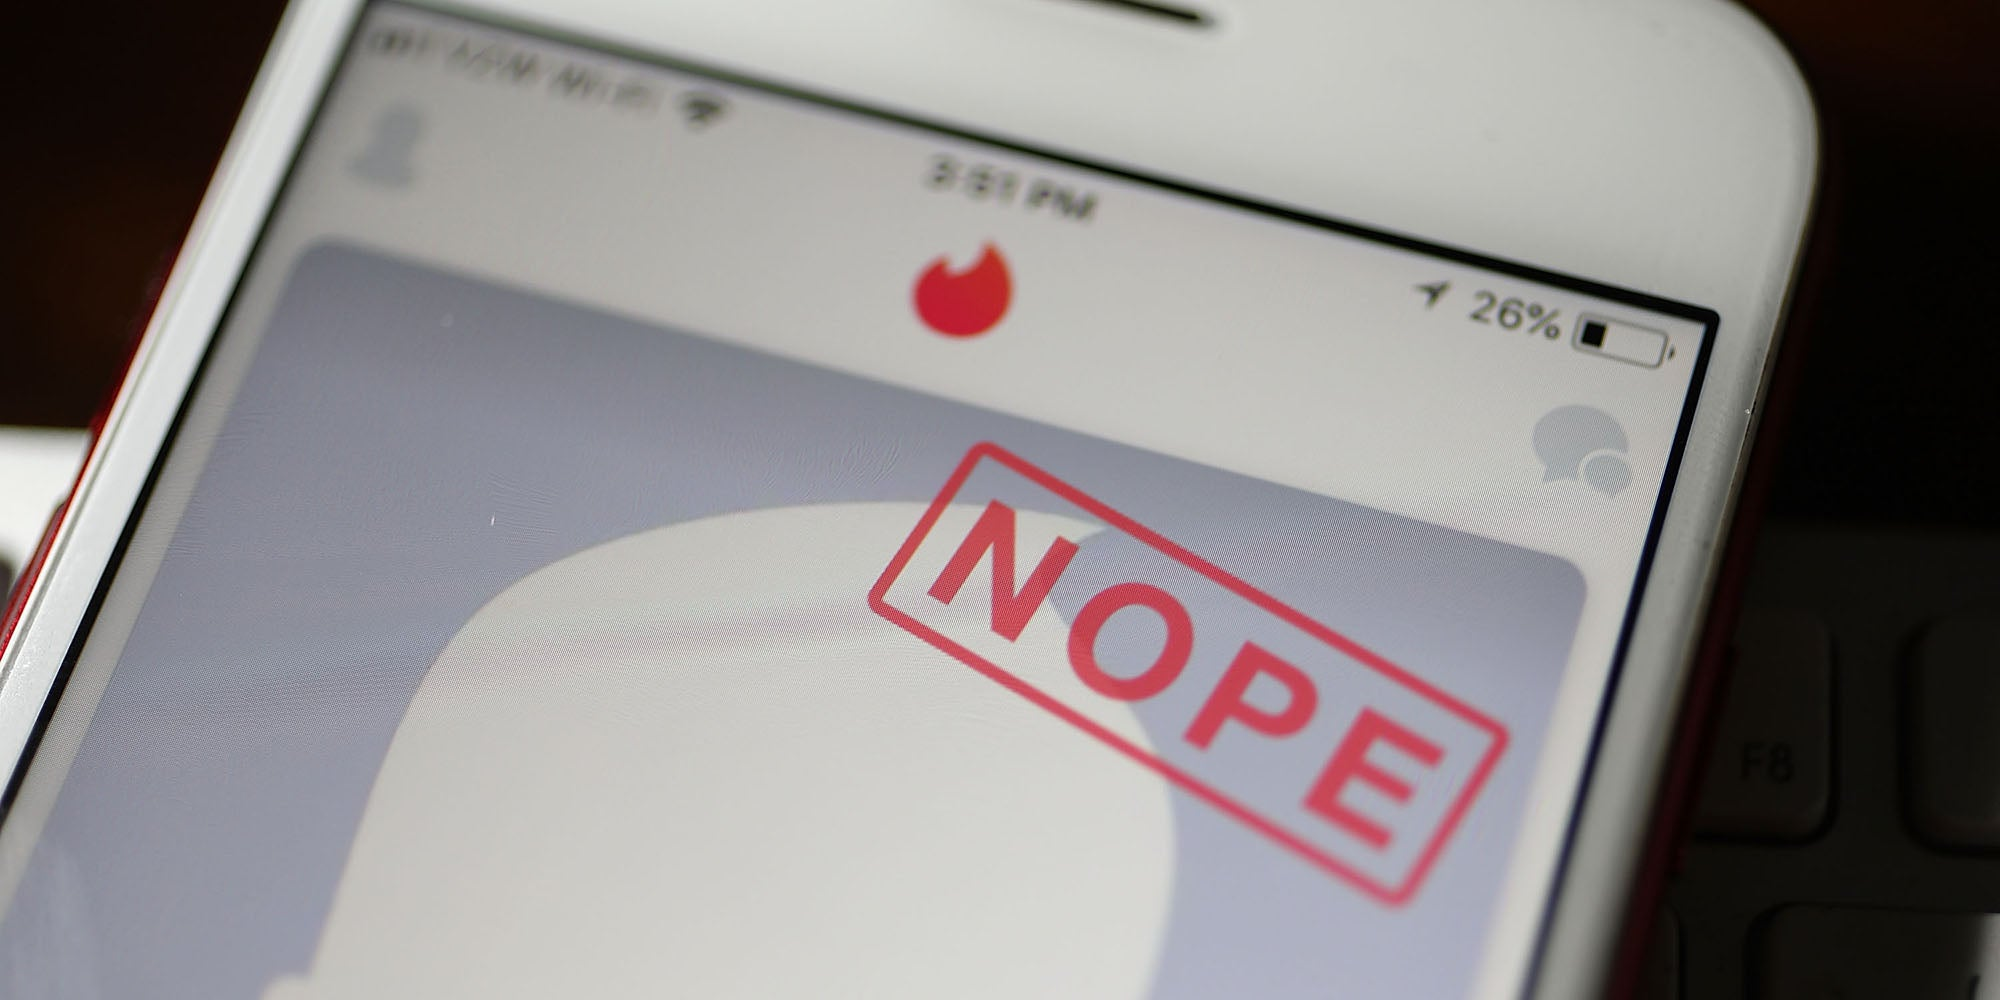 Tinder down: App not working leaving people unable to log in and